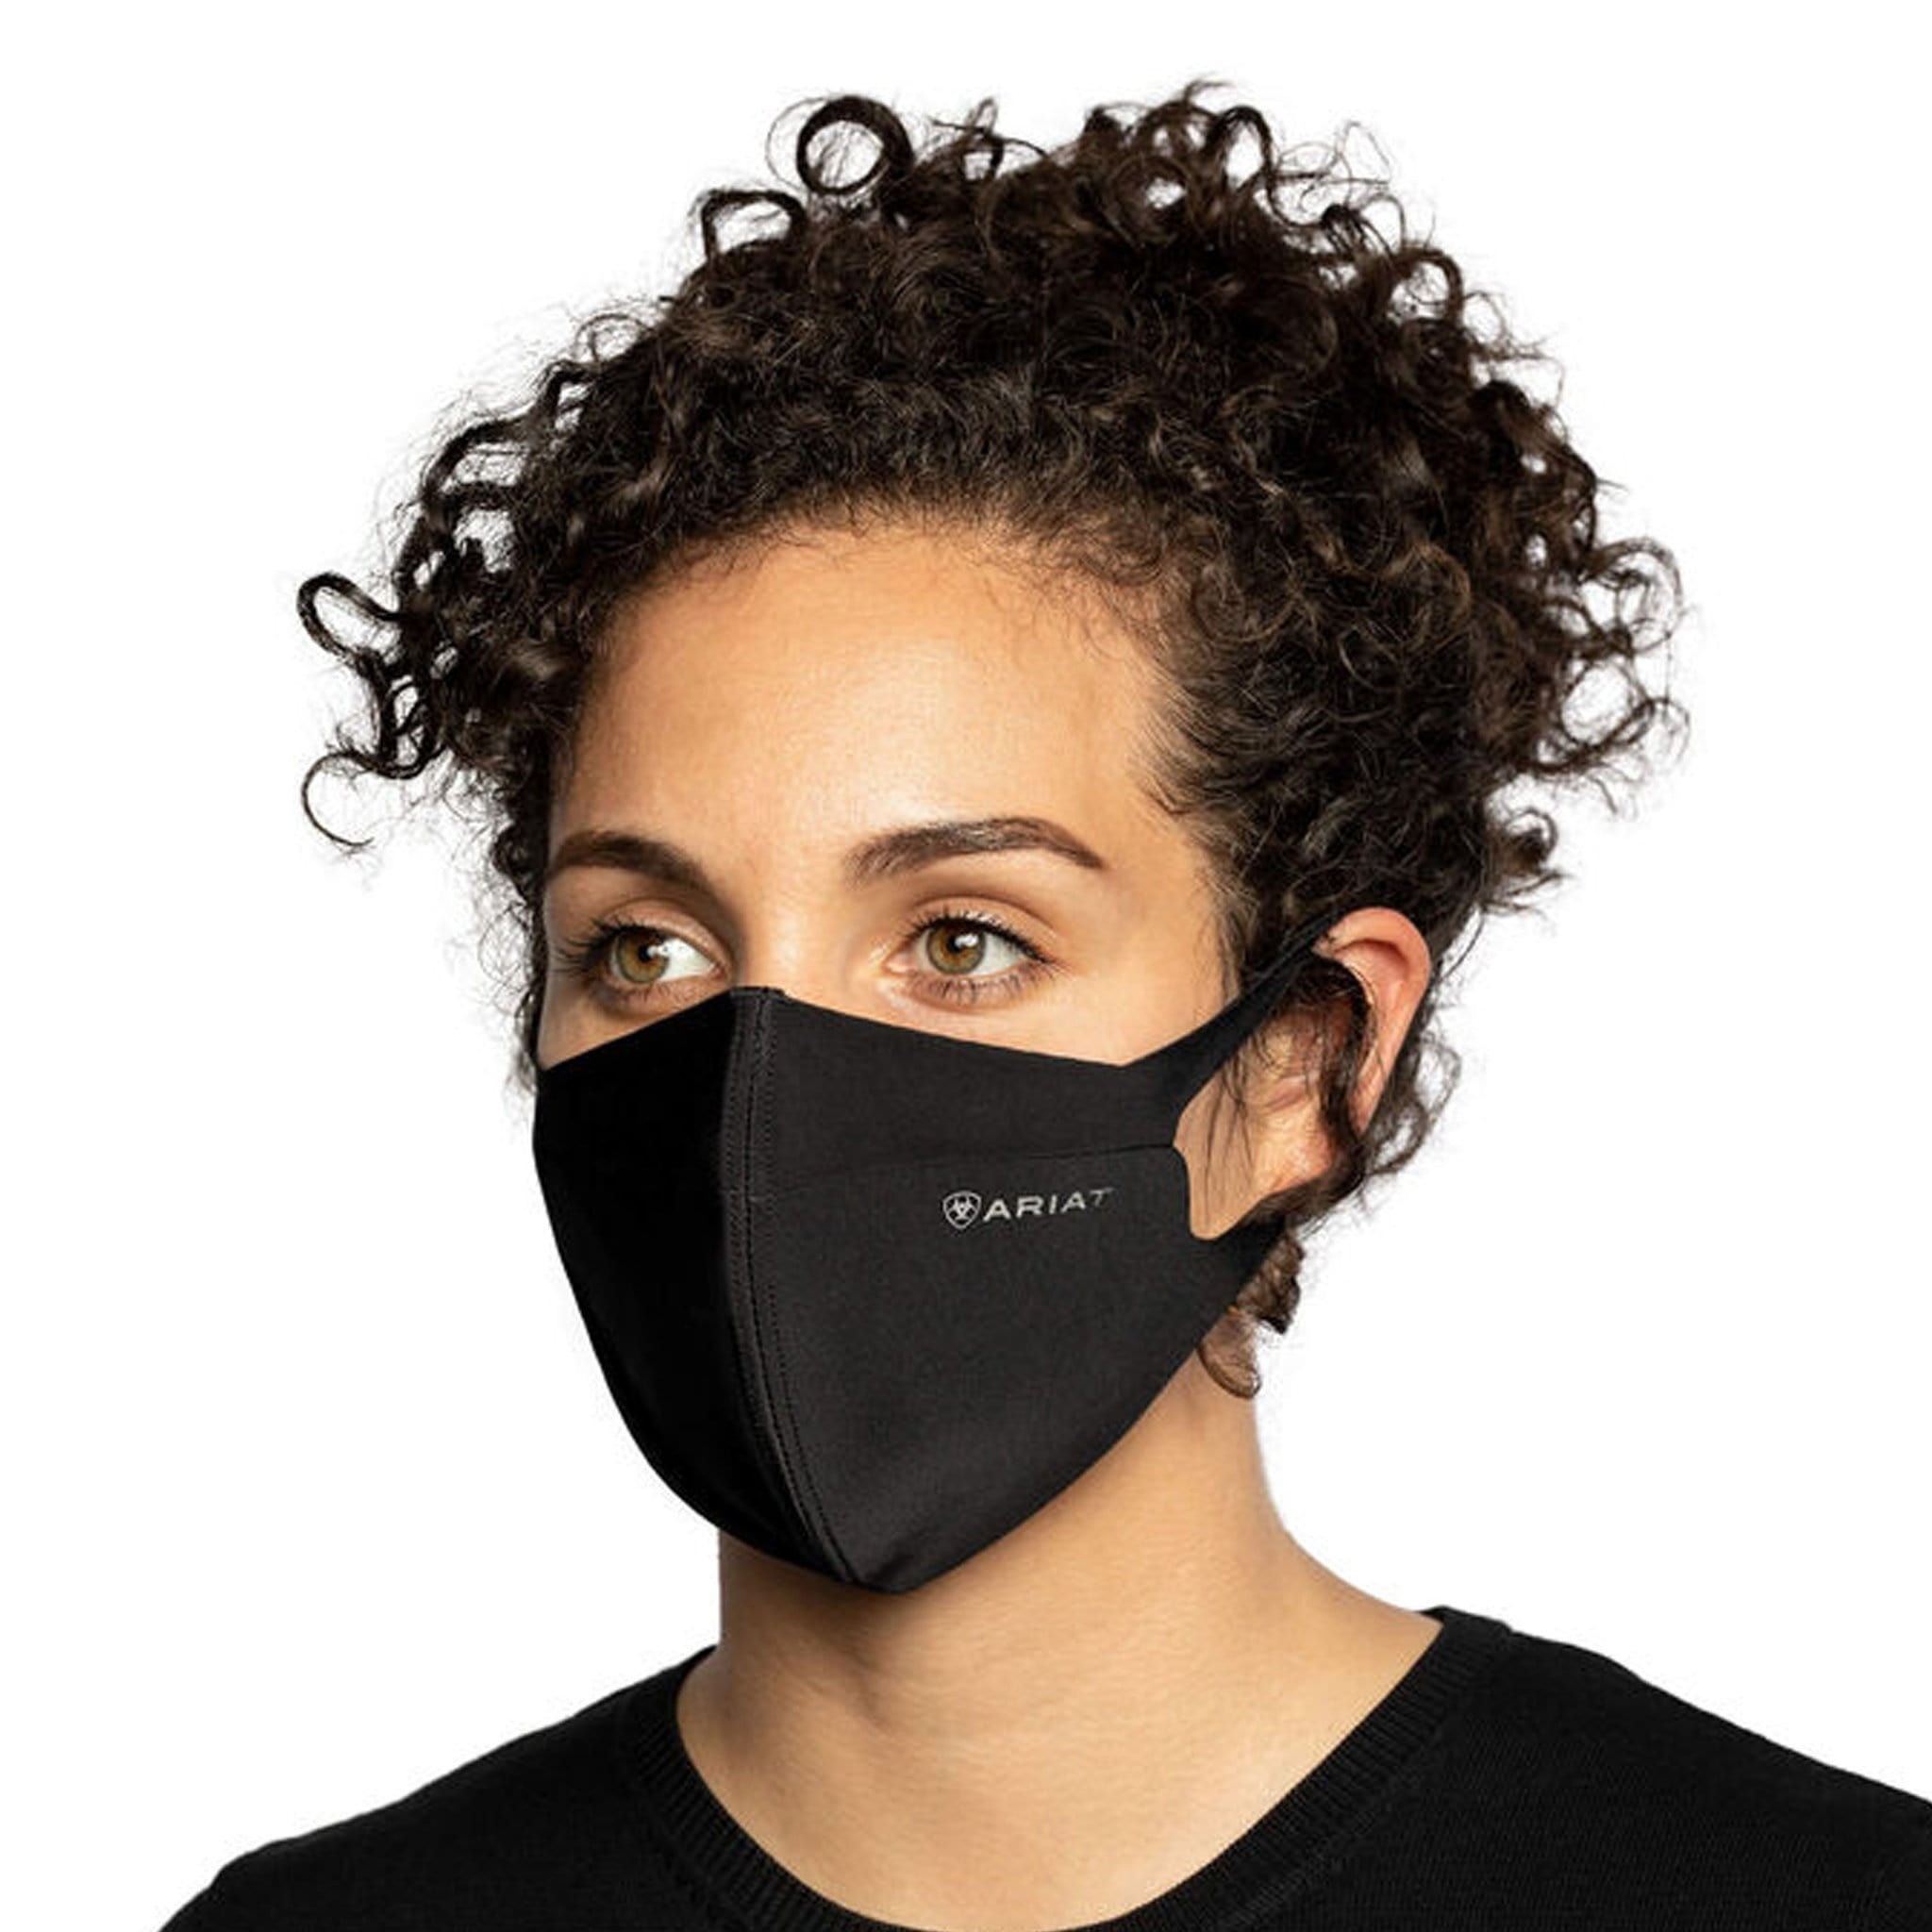 Ariat AriatTek Reusable Face Mask 10036632 Black On Model Front Angled View